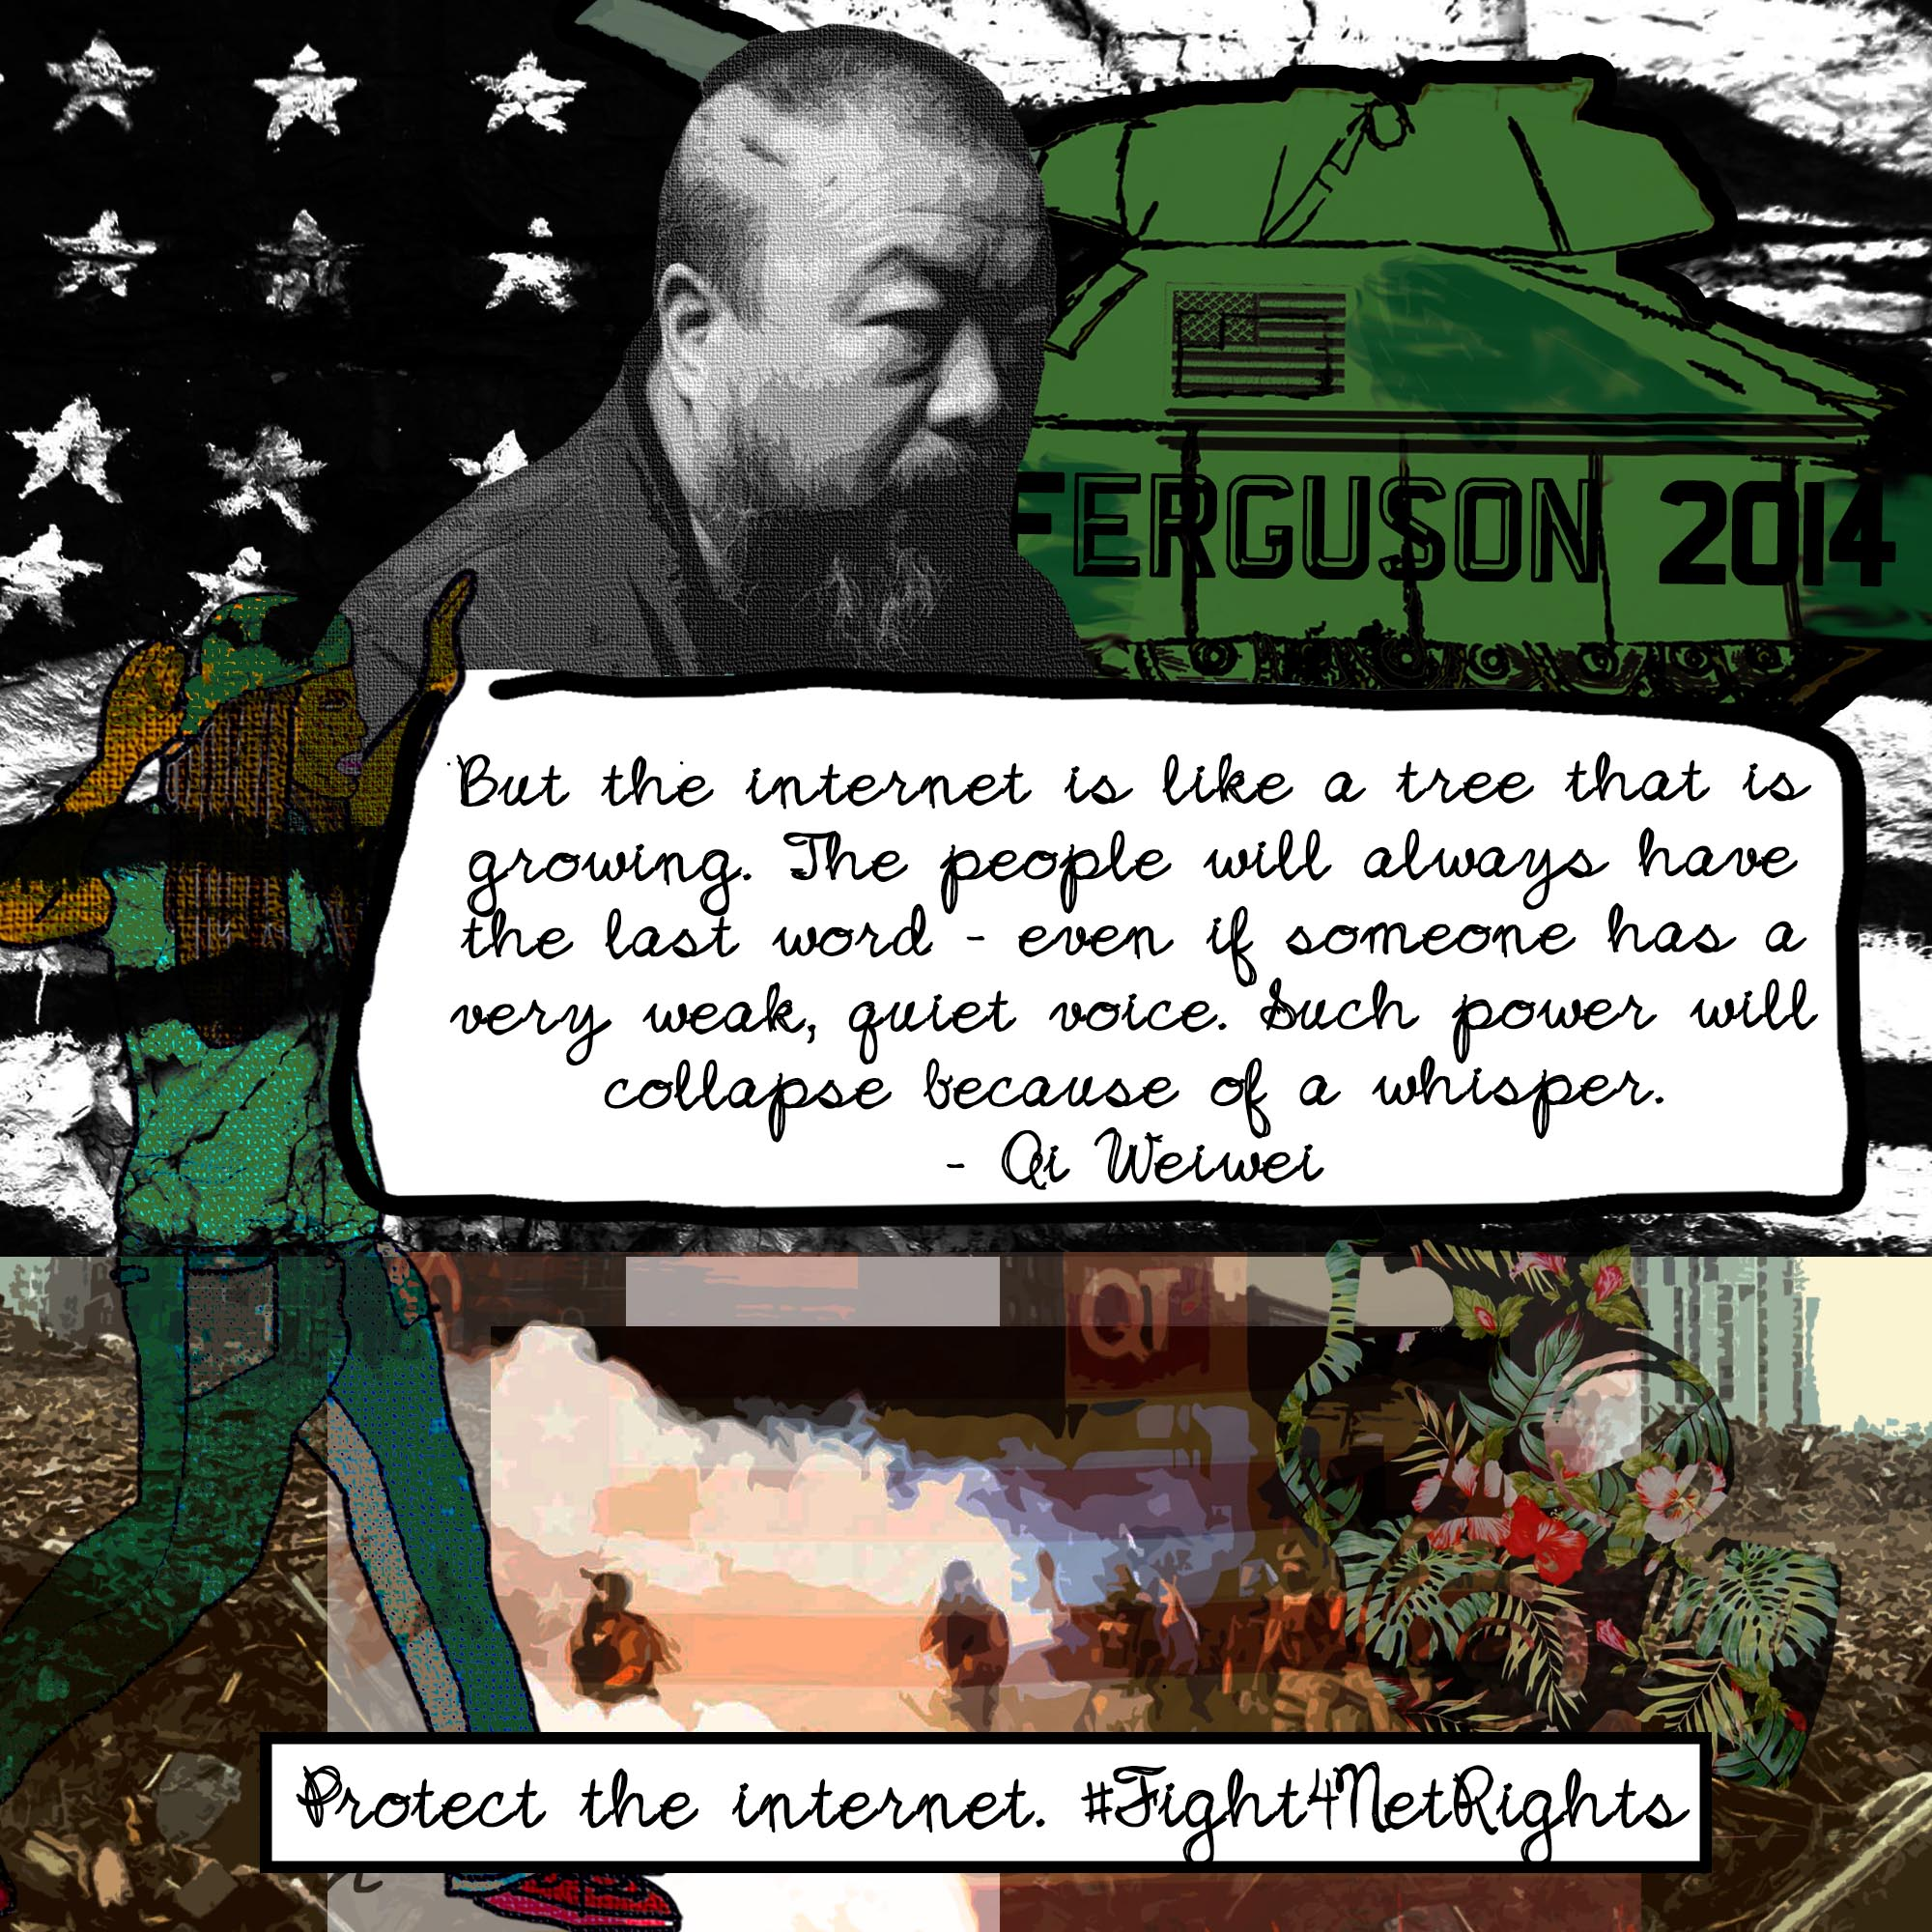 A collage featuring Chinese artist Ai Weiwei, a green tank with the text 'Ferguson 2014', protestors in the streets, and a drawing of a Black man with his hands up is overlayed with the text 'But the internet is like a tree that is growing. The people will always have the last word - even if someone has a very weak, quiet voice. Such power will collapse because of a whisper.' - Ai Weiwei. 'Protect the internet. #Fight4NetRights'